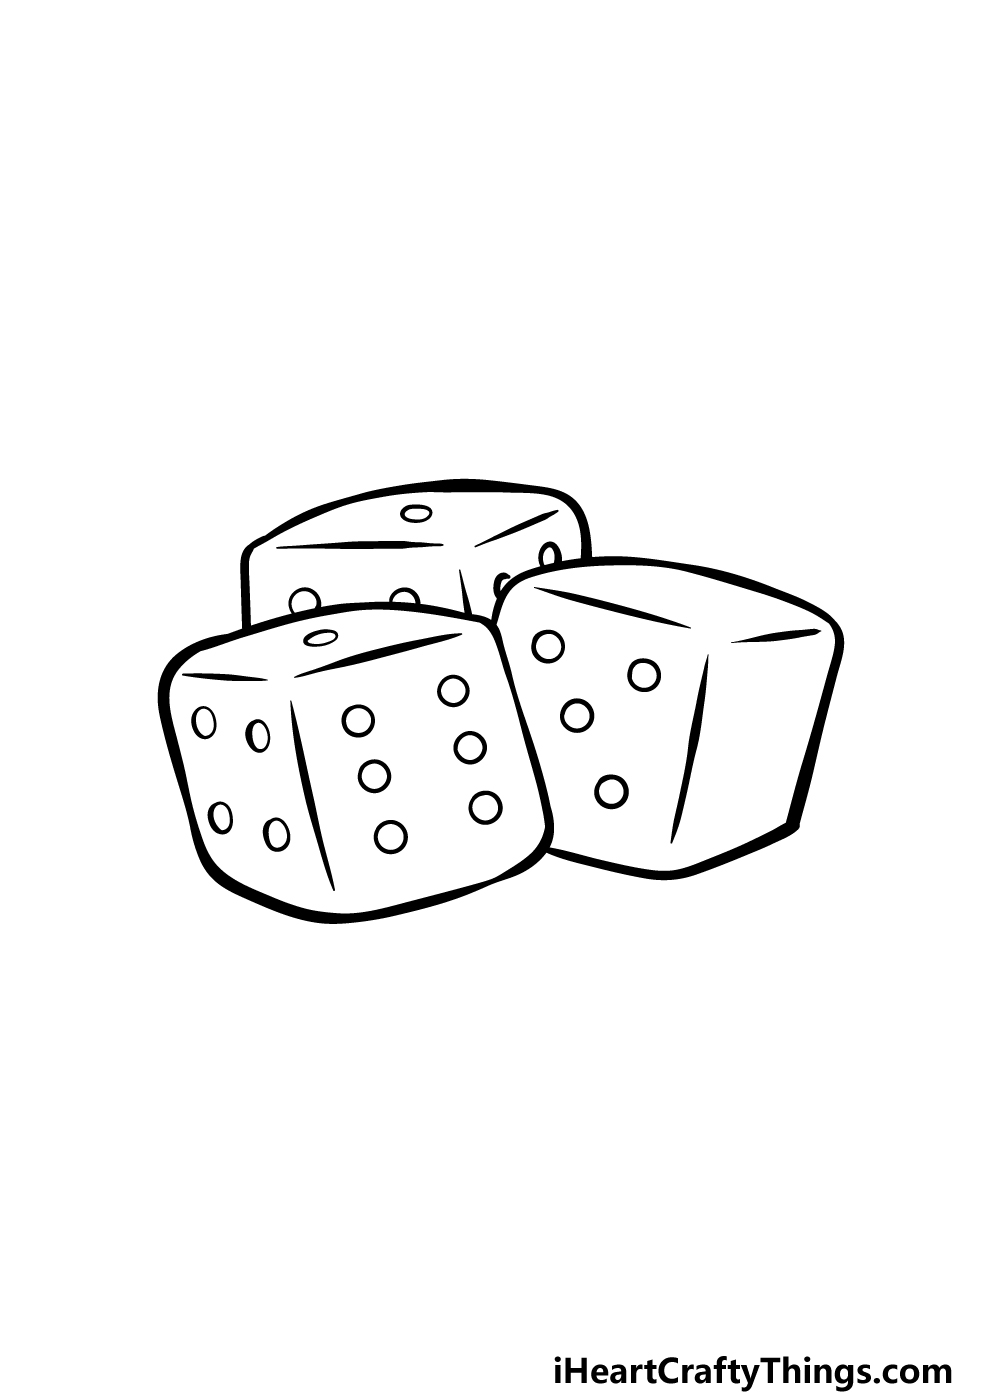 drawing the dice step 4